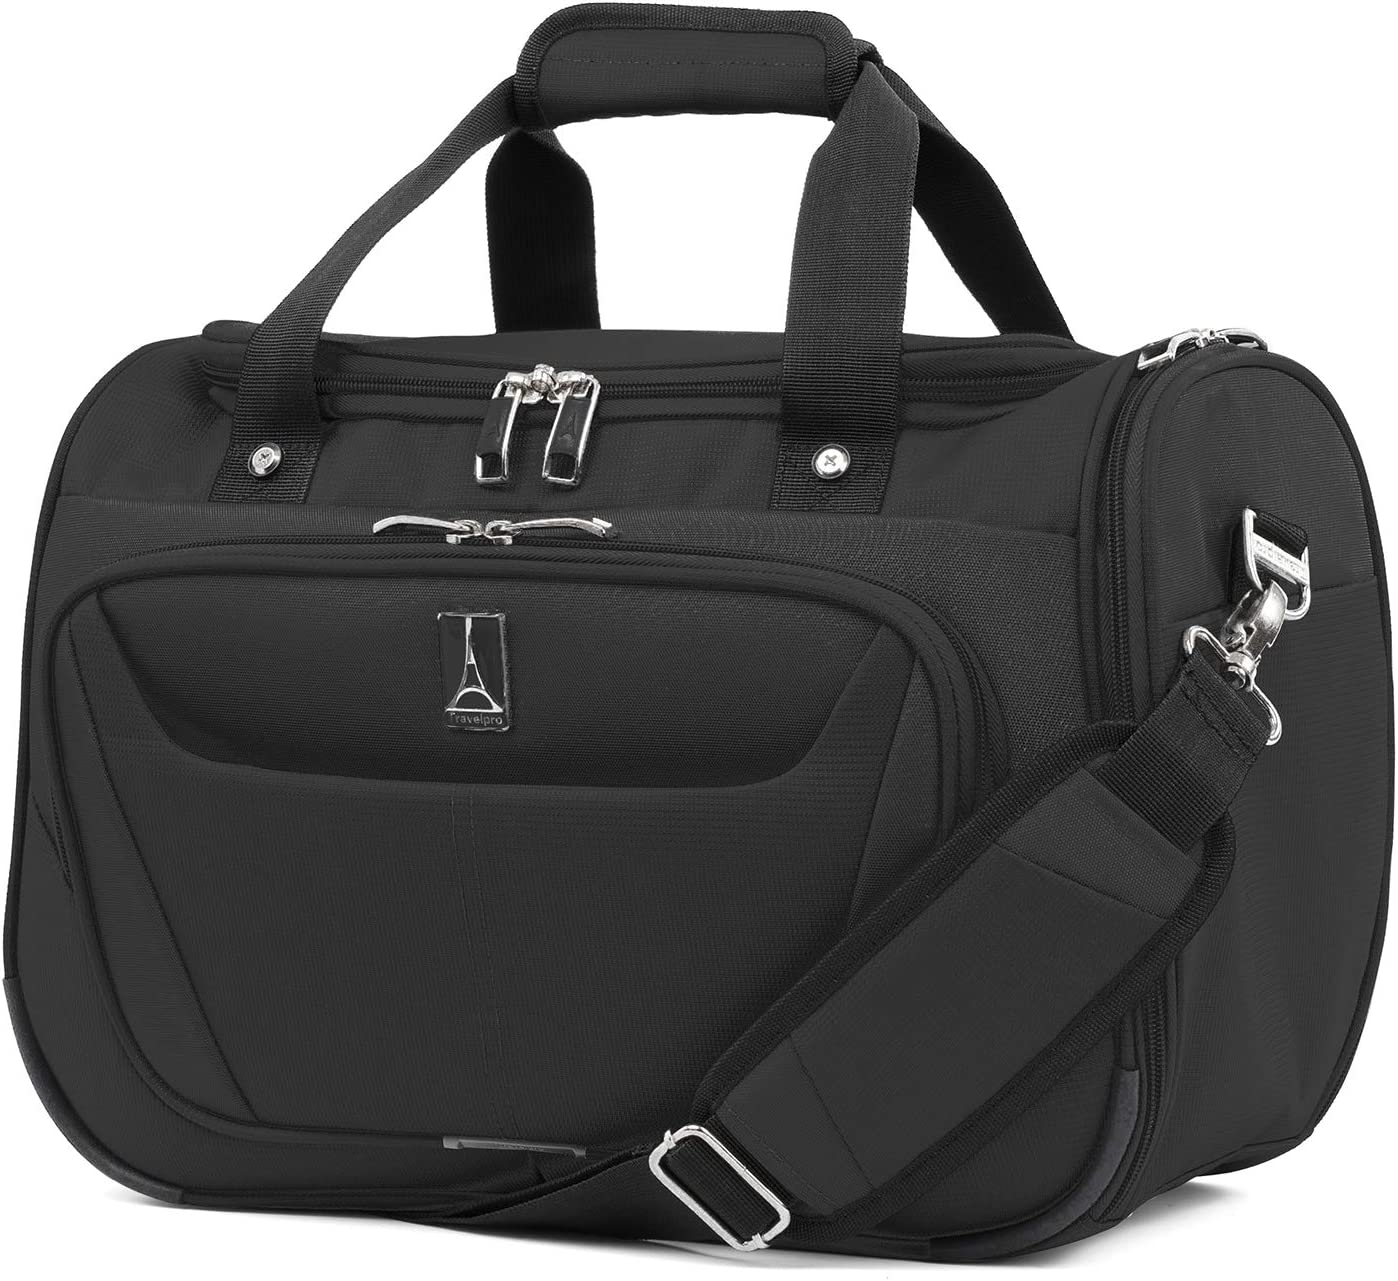 Travelpro Maxlite 5-Lightweight Underseat Carry-On Travel Tote Bag, Black